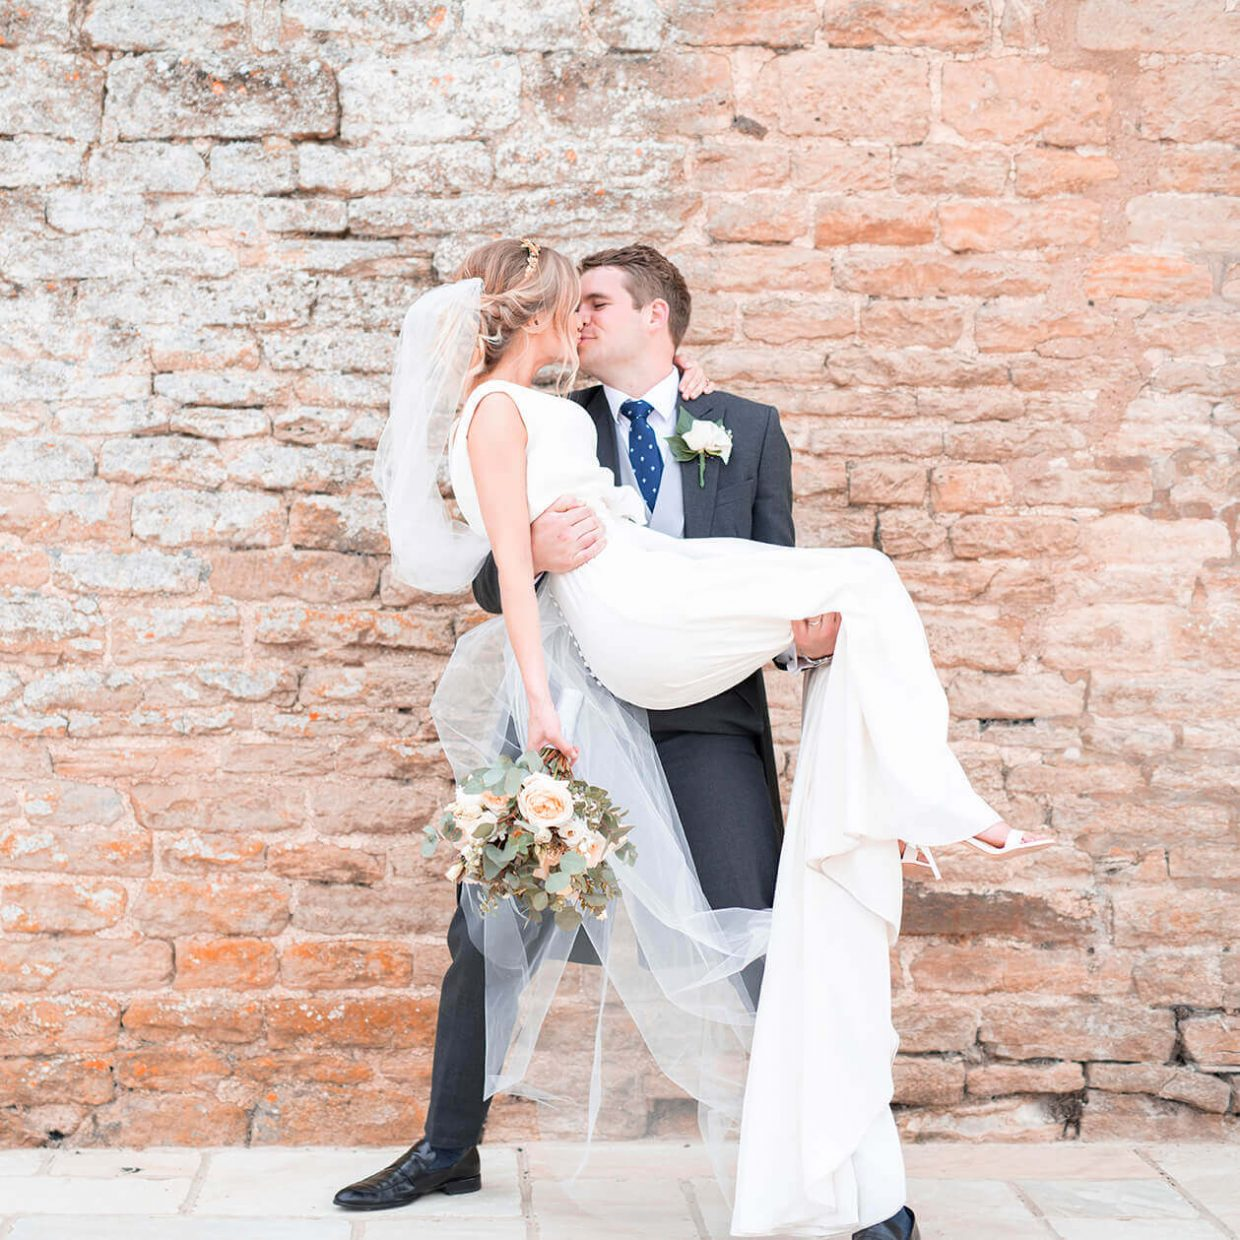 Wedding Photographer based in Coventry & Warwickshire